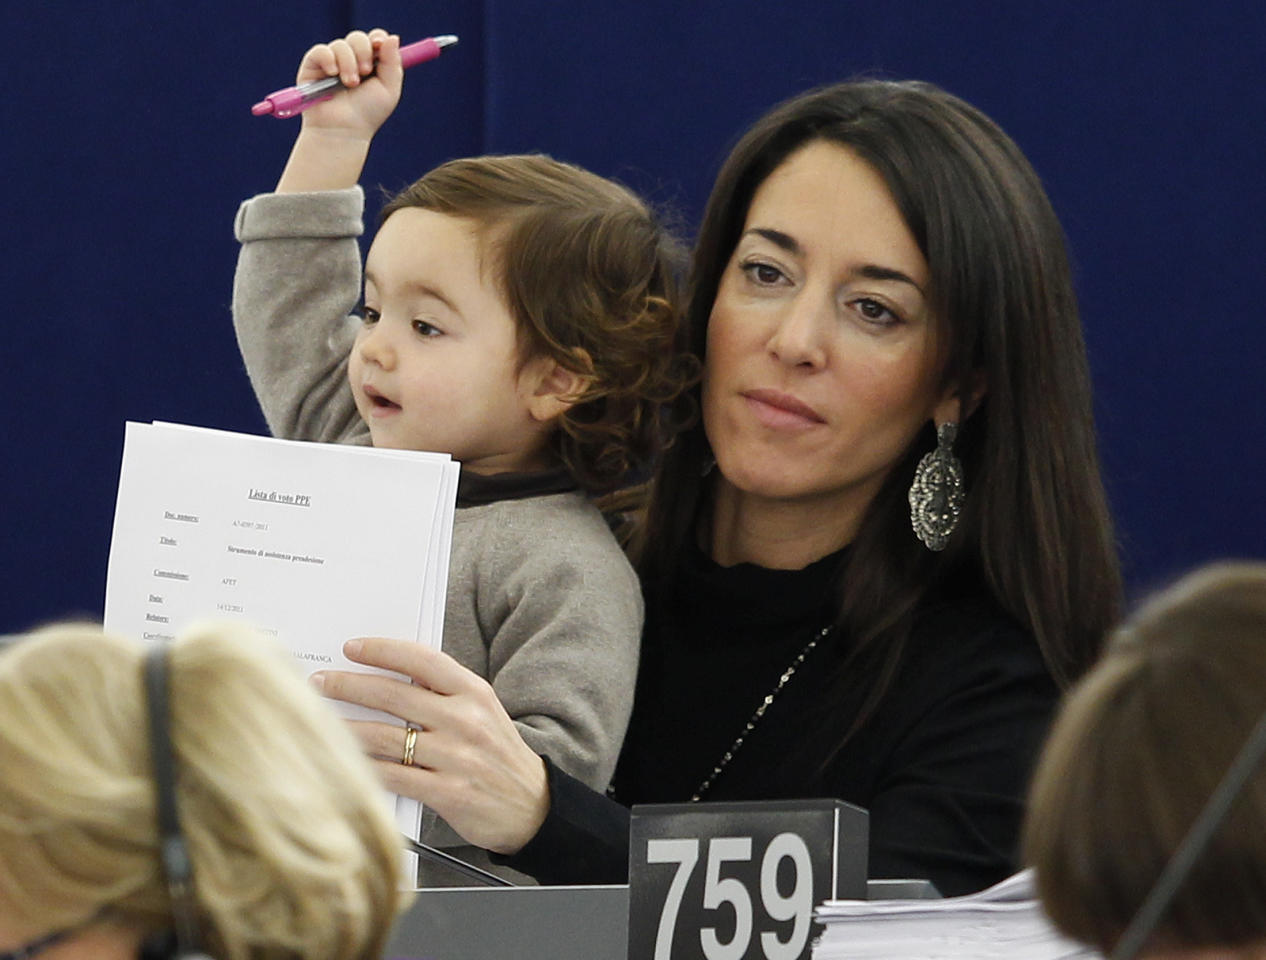 Member of the European Parliament Ronzulli of Italy holds her baby during a voting session at the European Parliament. Do you think the baby is objecting?